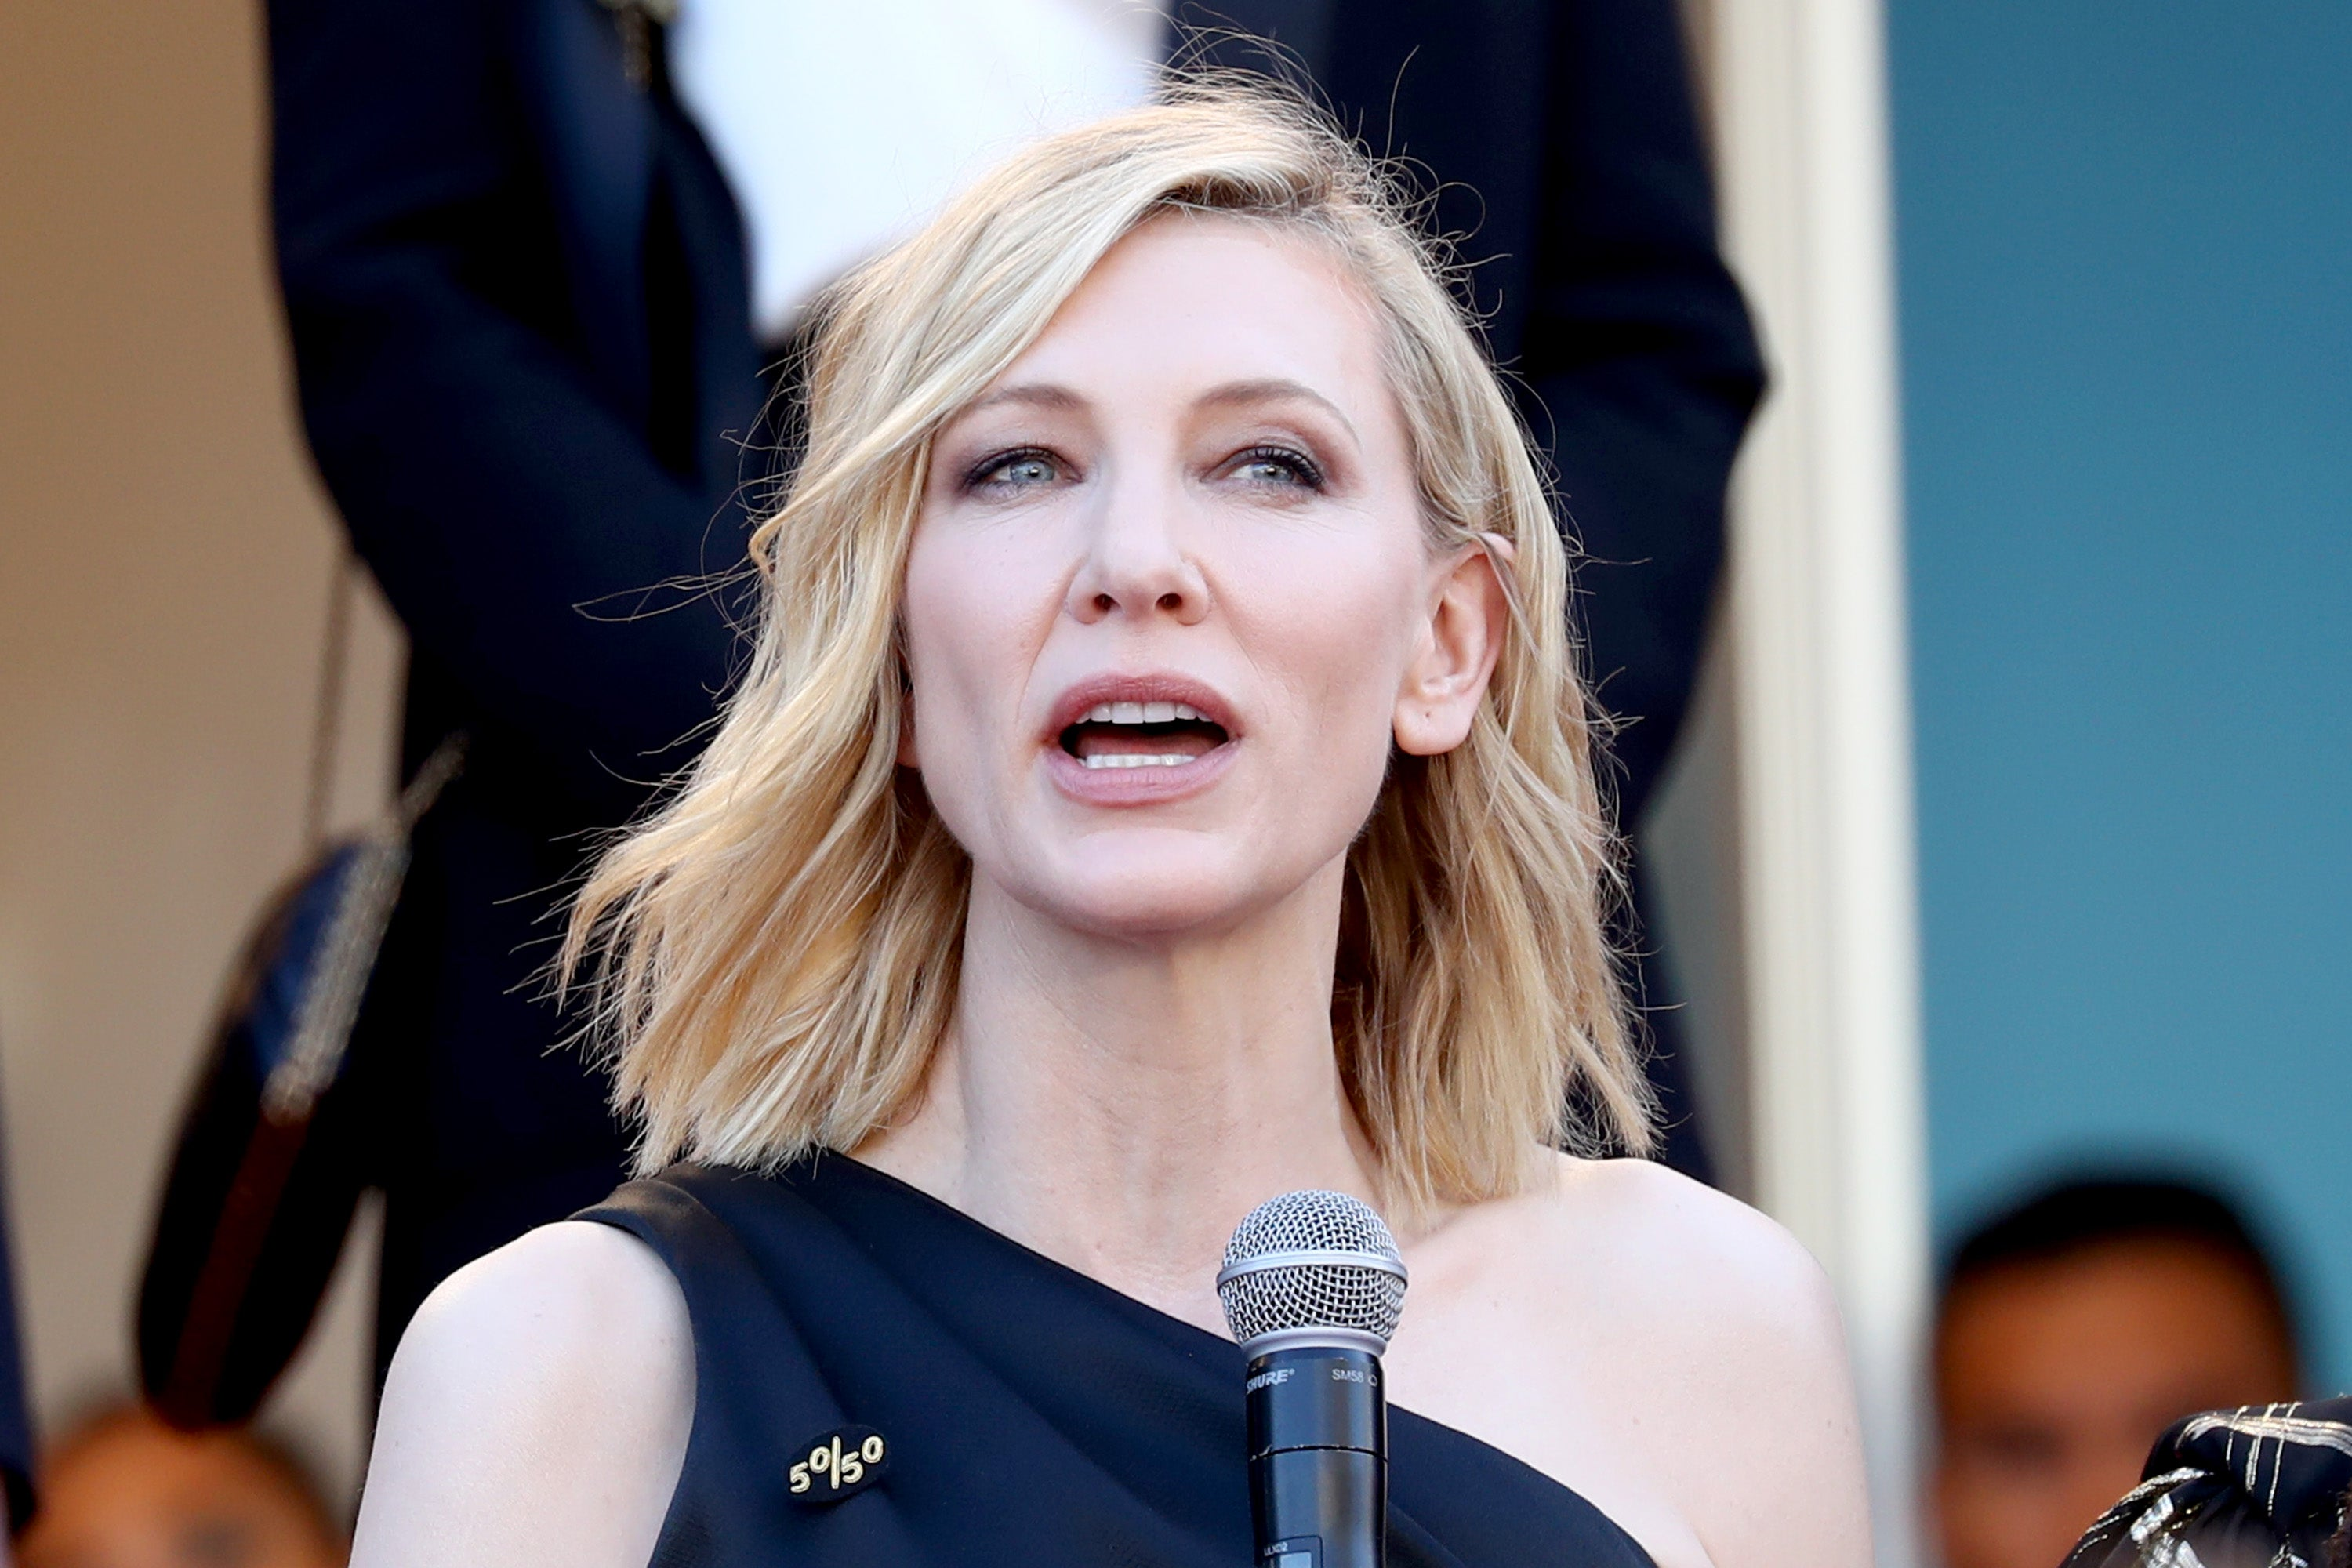 Cate Blanchett in Cannes 2018